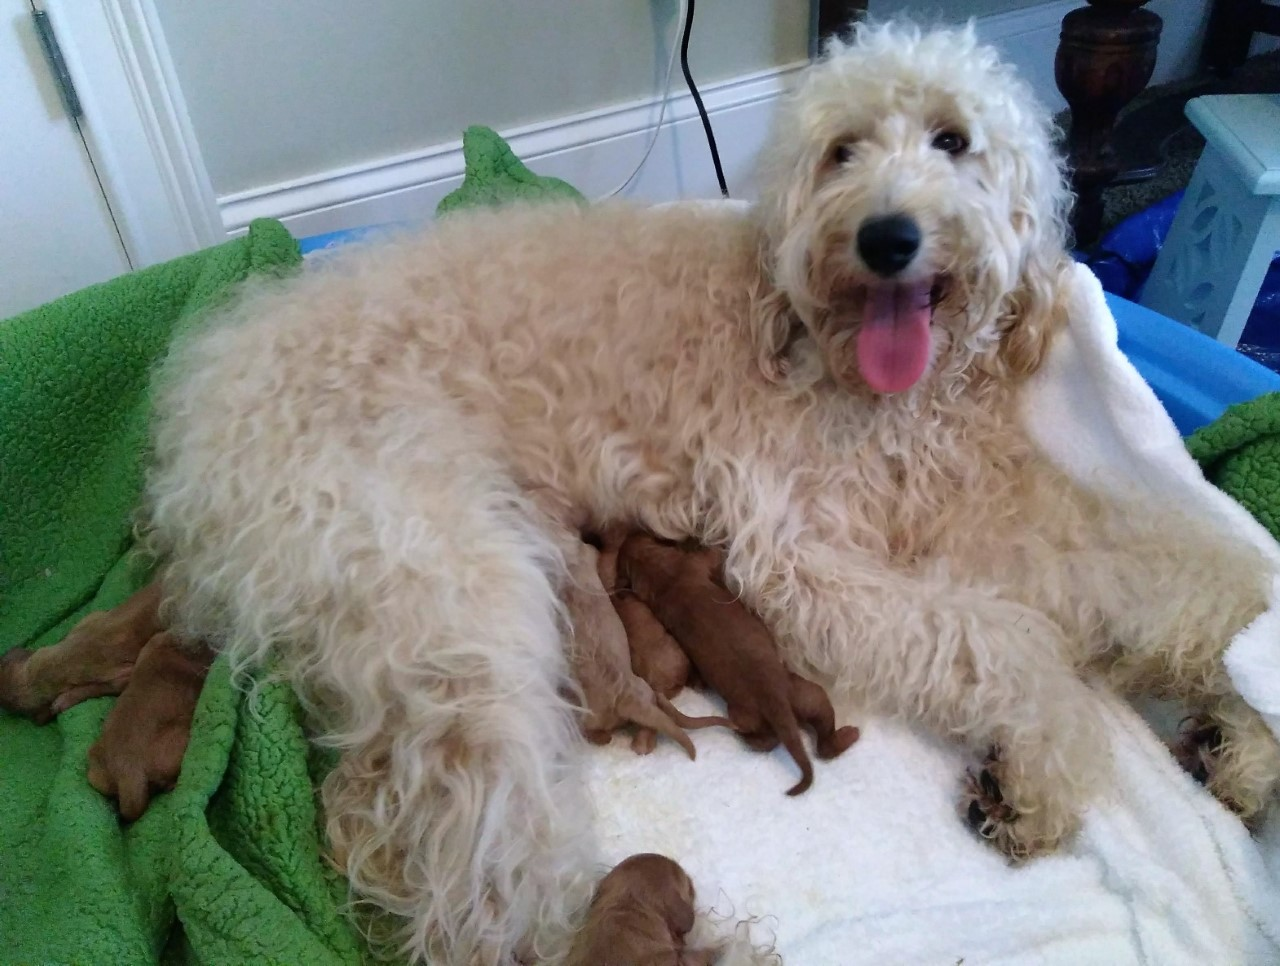 Greta, the Goldendoodle mom